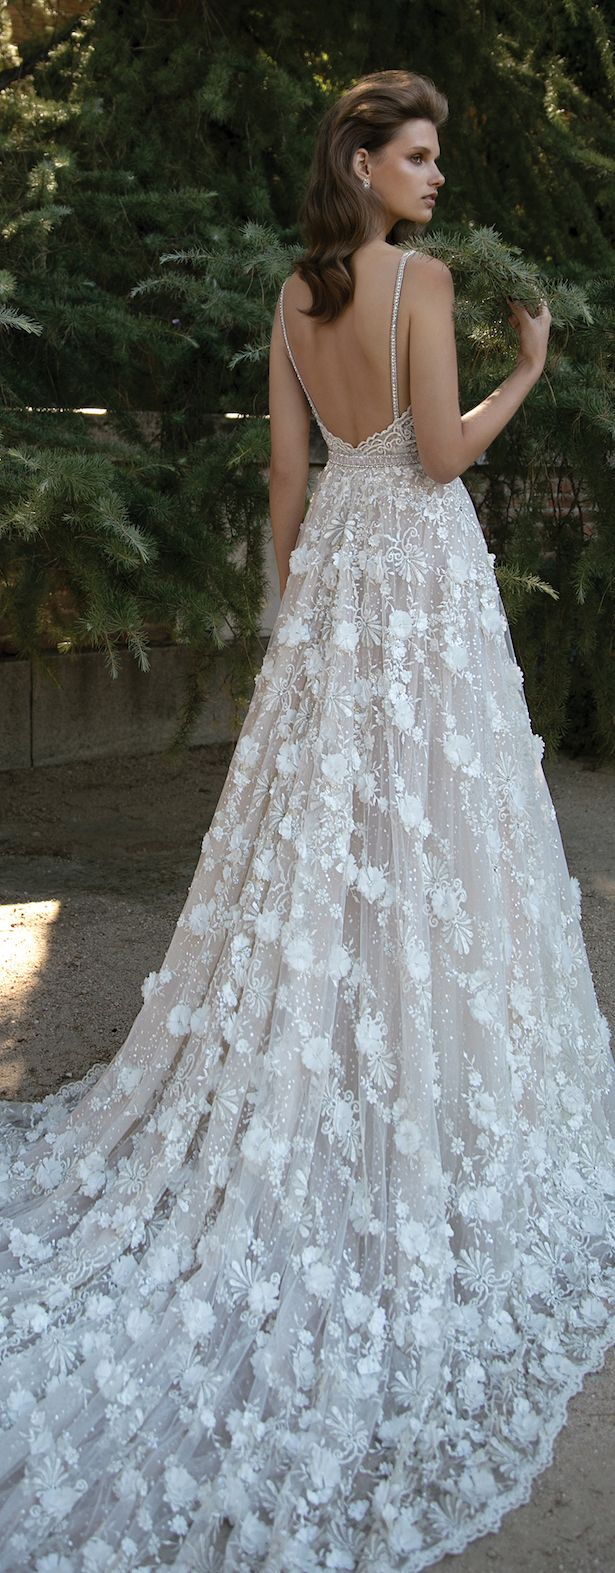 Berta Bridal Spring 2016 Collection – Part 2 | Colección nupcial ...